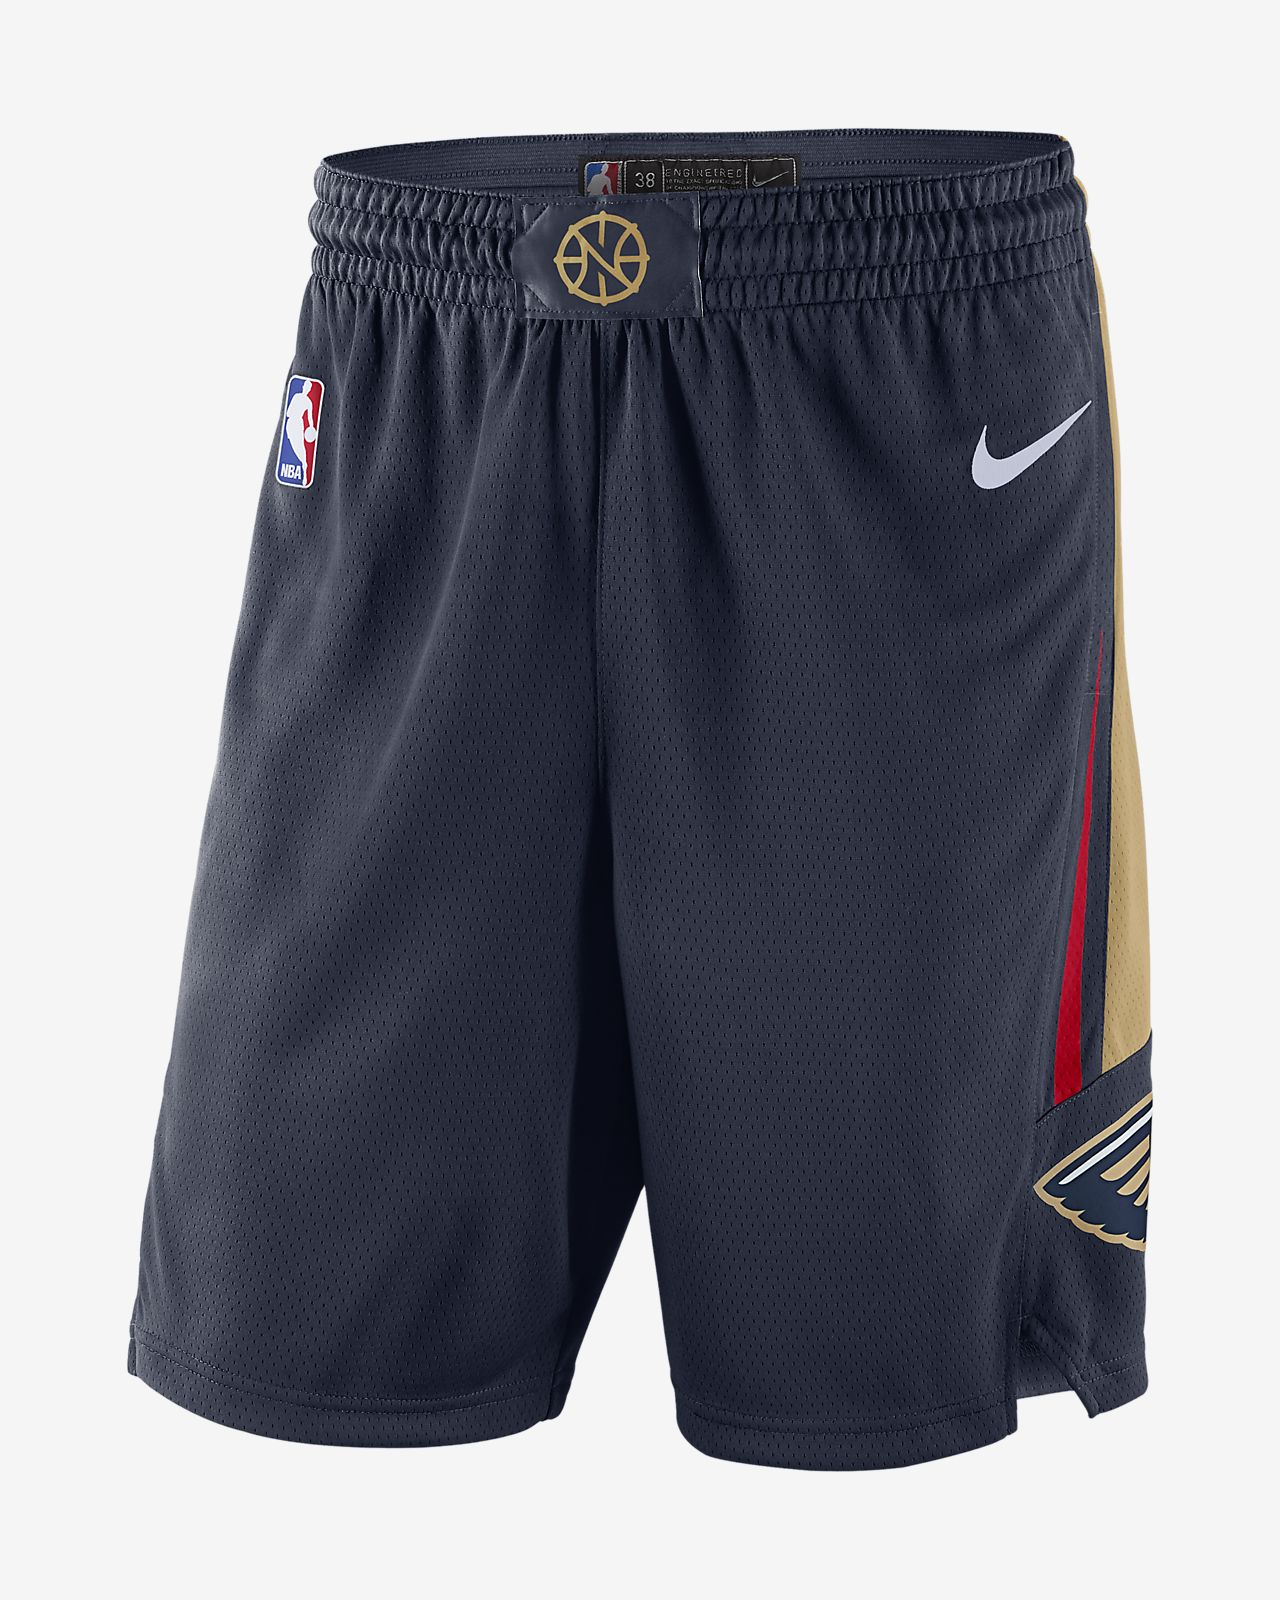 Shorts de la NBA para hombre New Orleans Pelicans Icon Edition Swingman